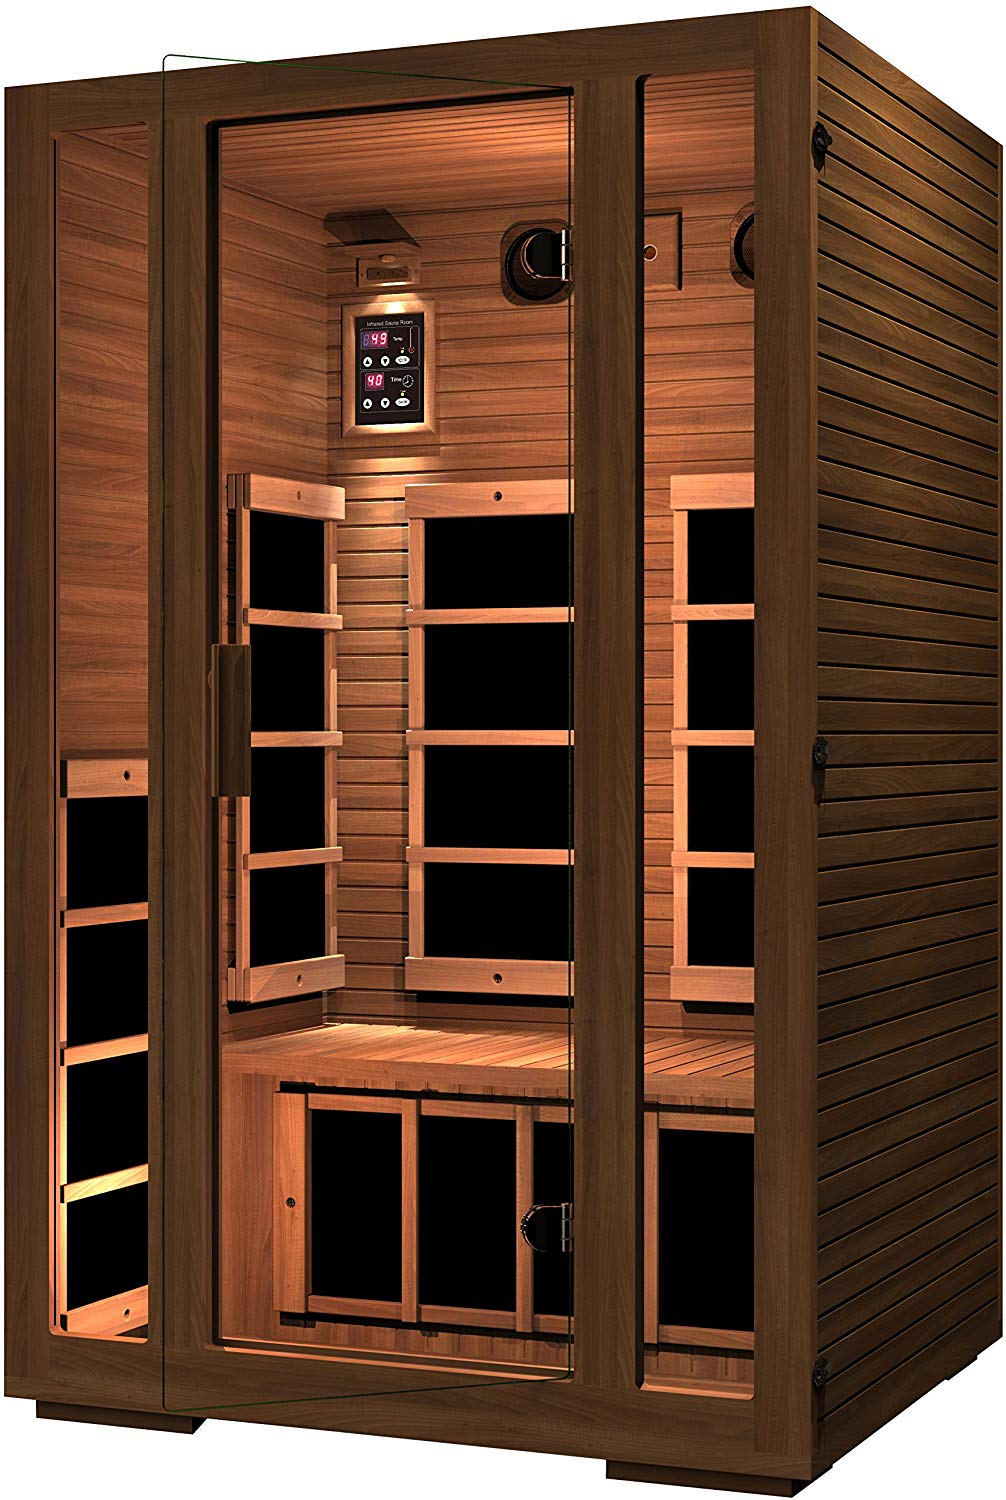 JNH Lifestyles MG201RB Freedom Infrared Sauna